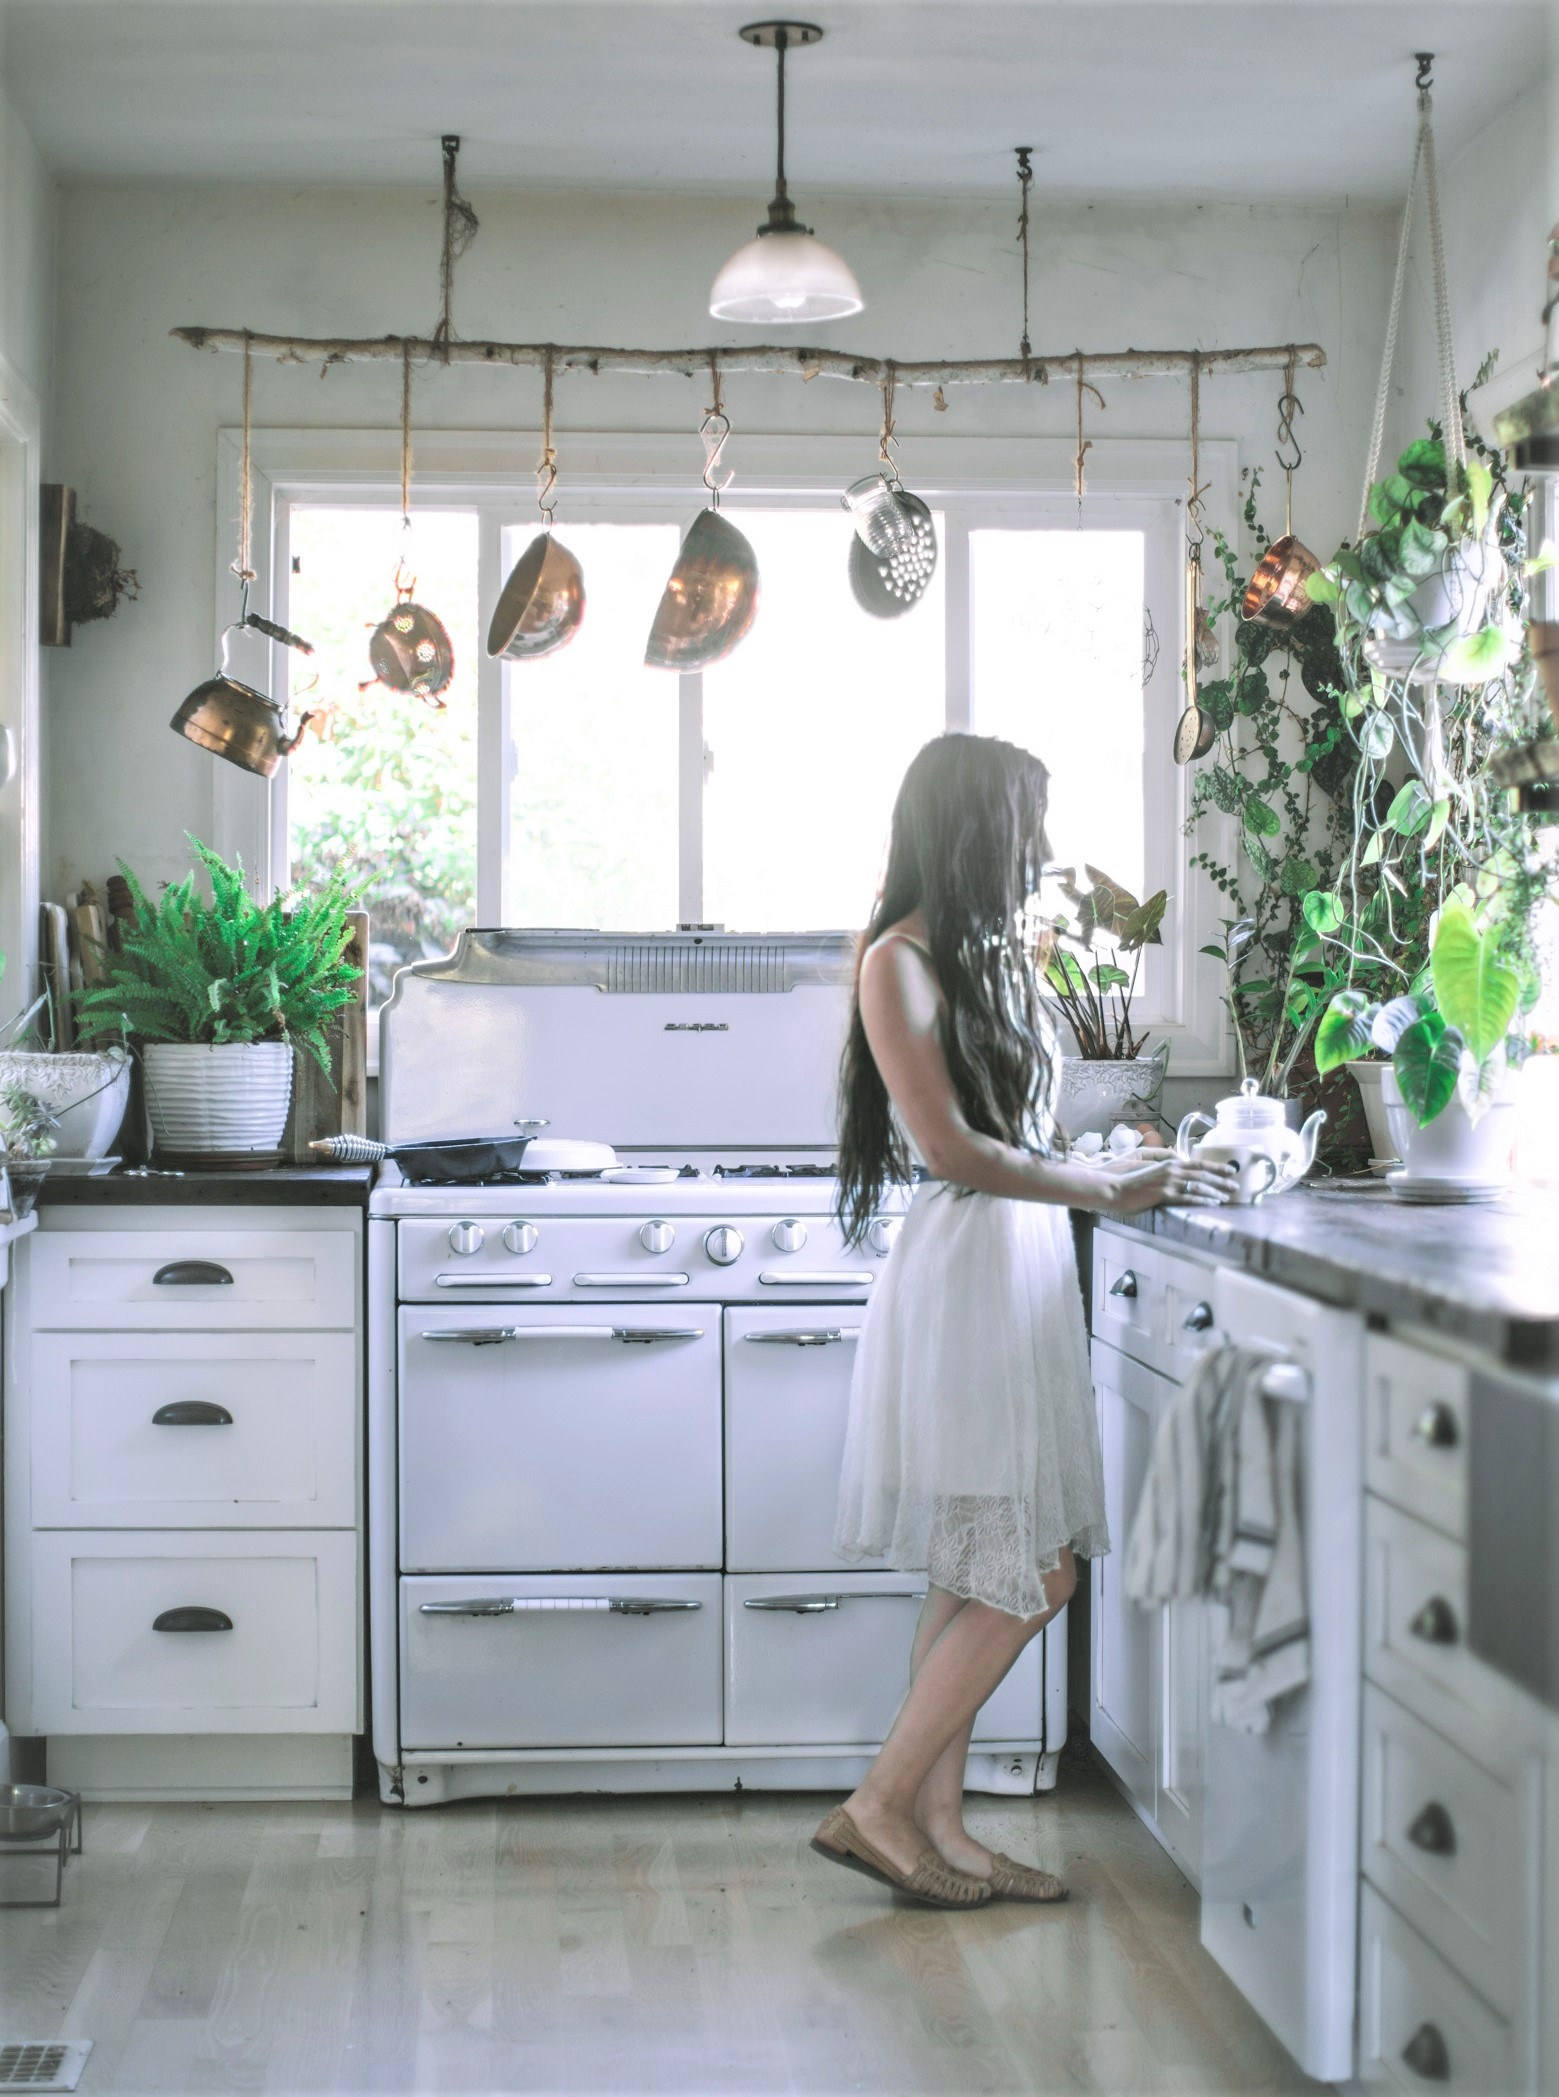 zERO WASTE KITCHEN RENOVATIONS CONSIDER THE Eewnvironment and are a very affordable way to add value to your property.